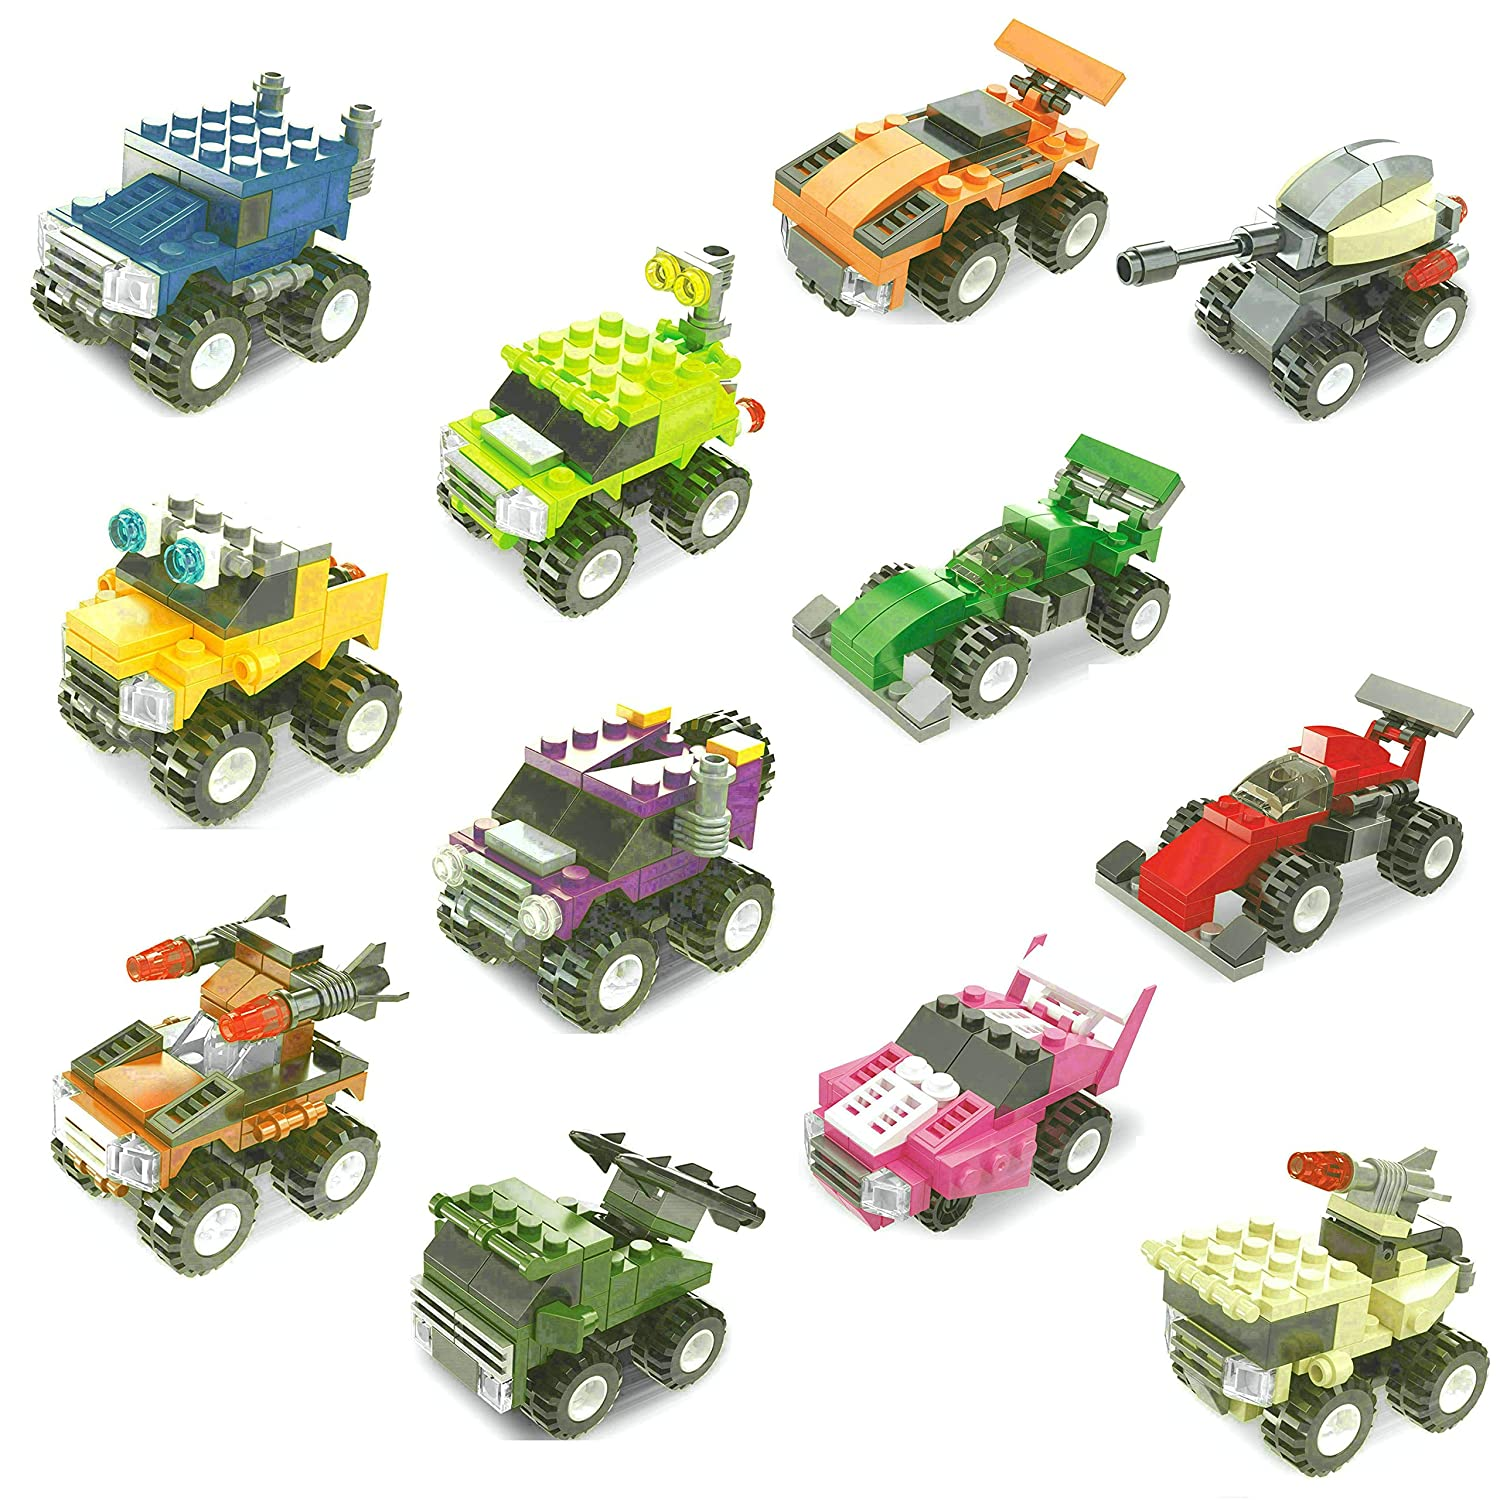 12 Boxes Binyuan Goodie Bags Building Toy for Party Supplies,Birthday Favors Buildable Pull Back Vehicles Mini Building Blocks Sets Kids Prizes